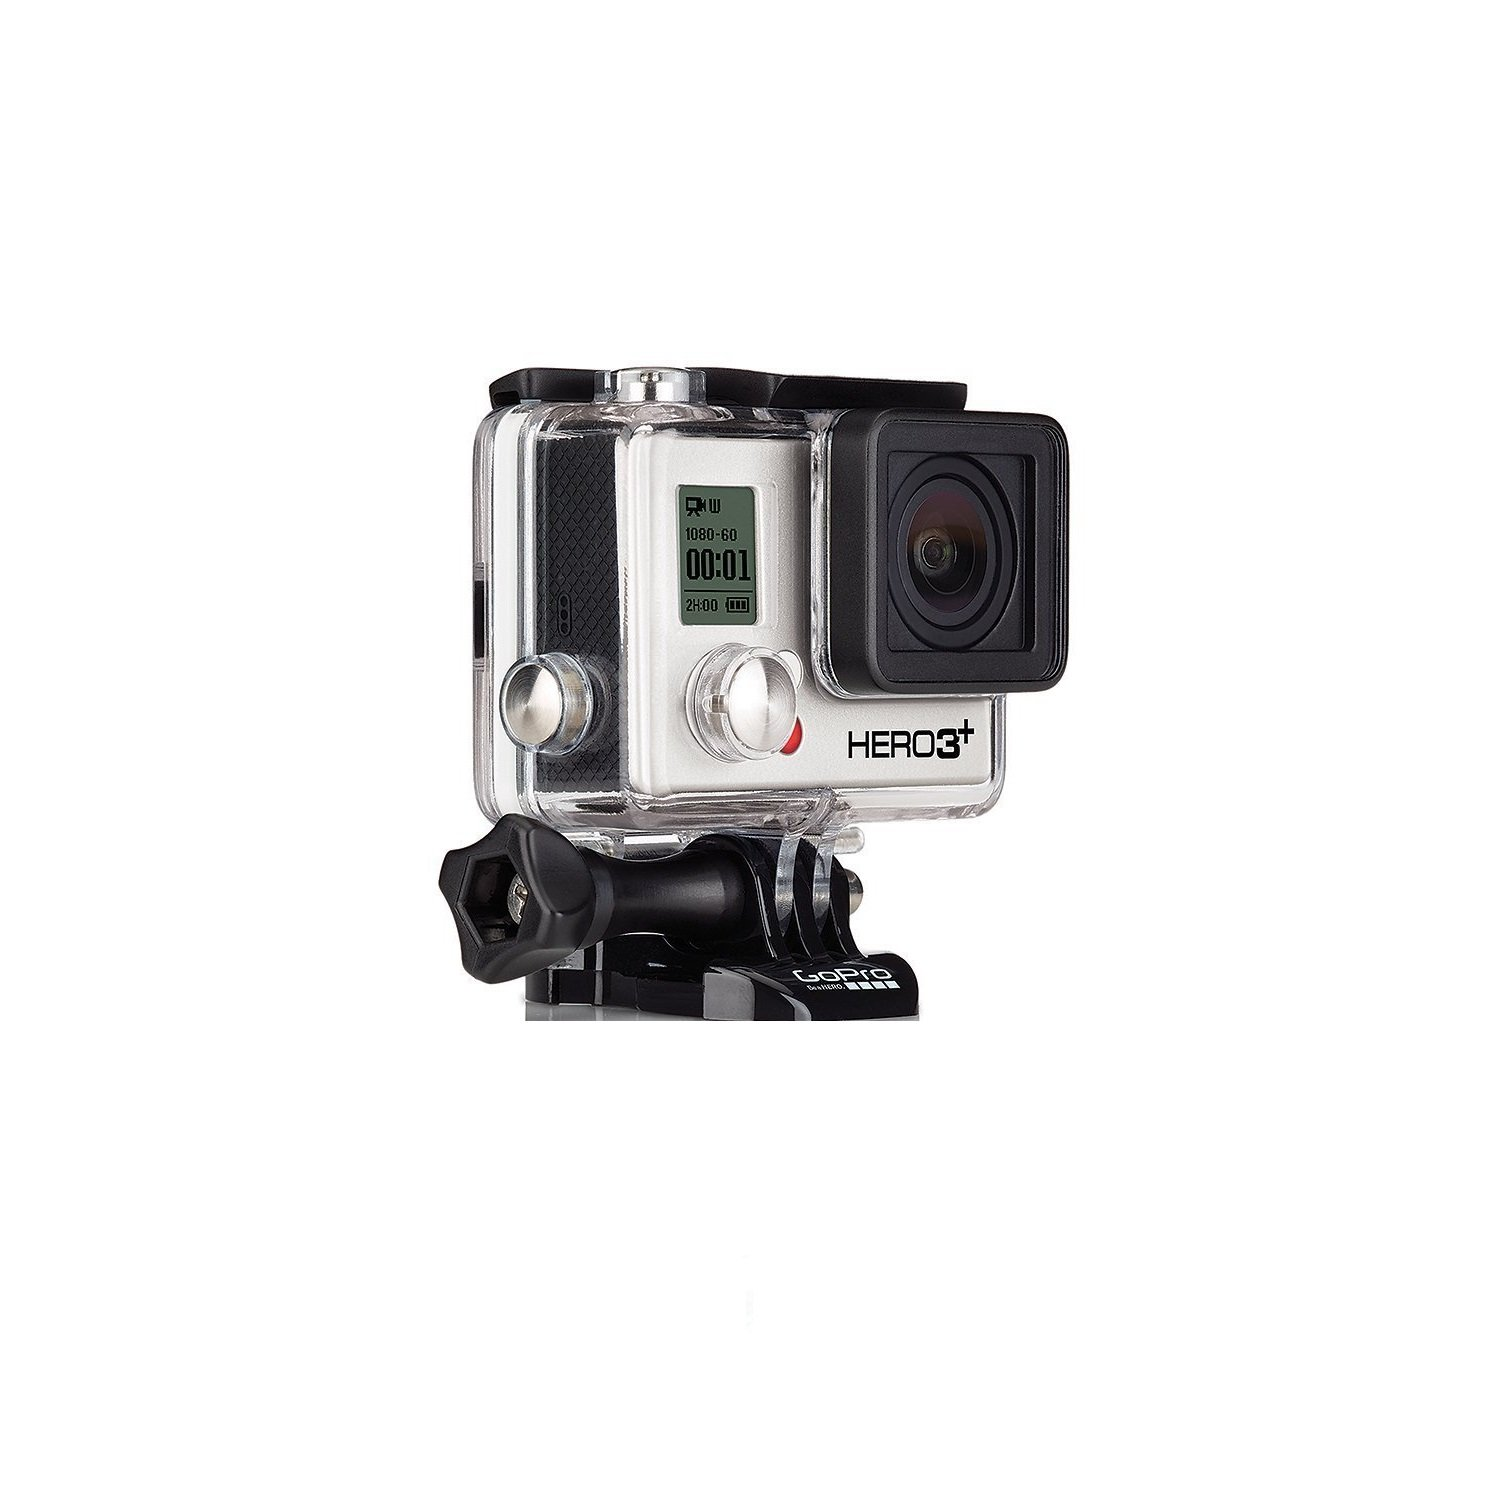 GoPro Actionkamera Hero 3+ Black Edition